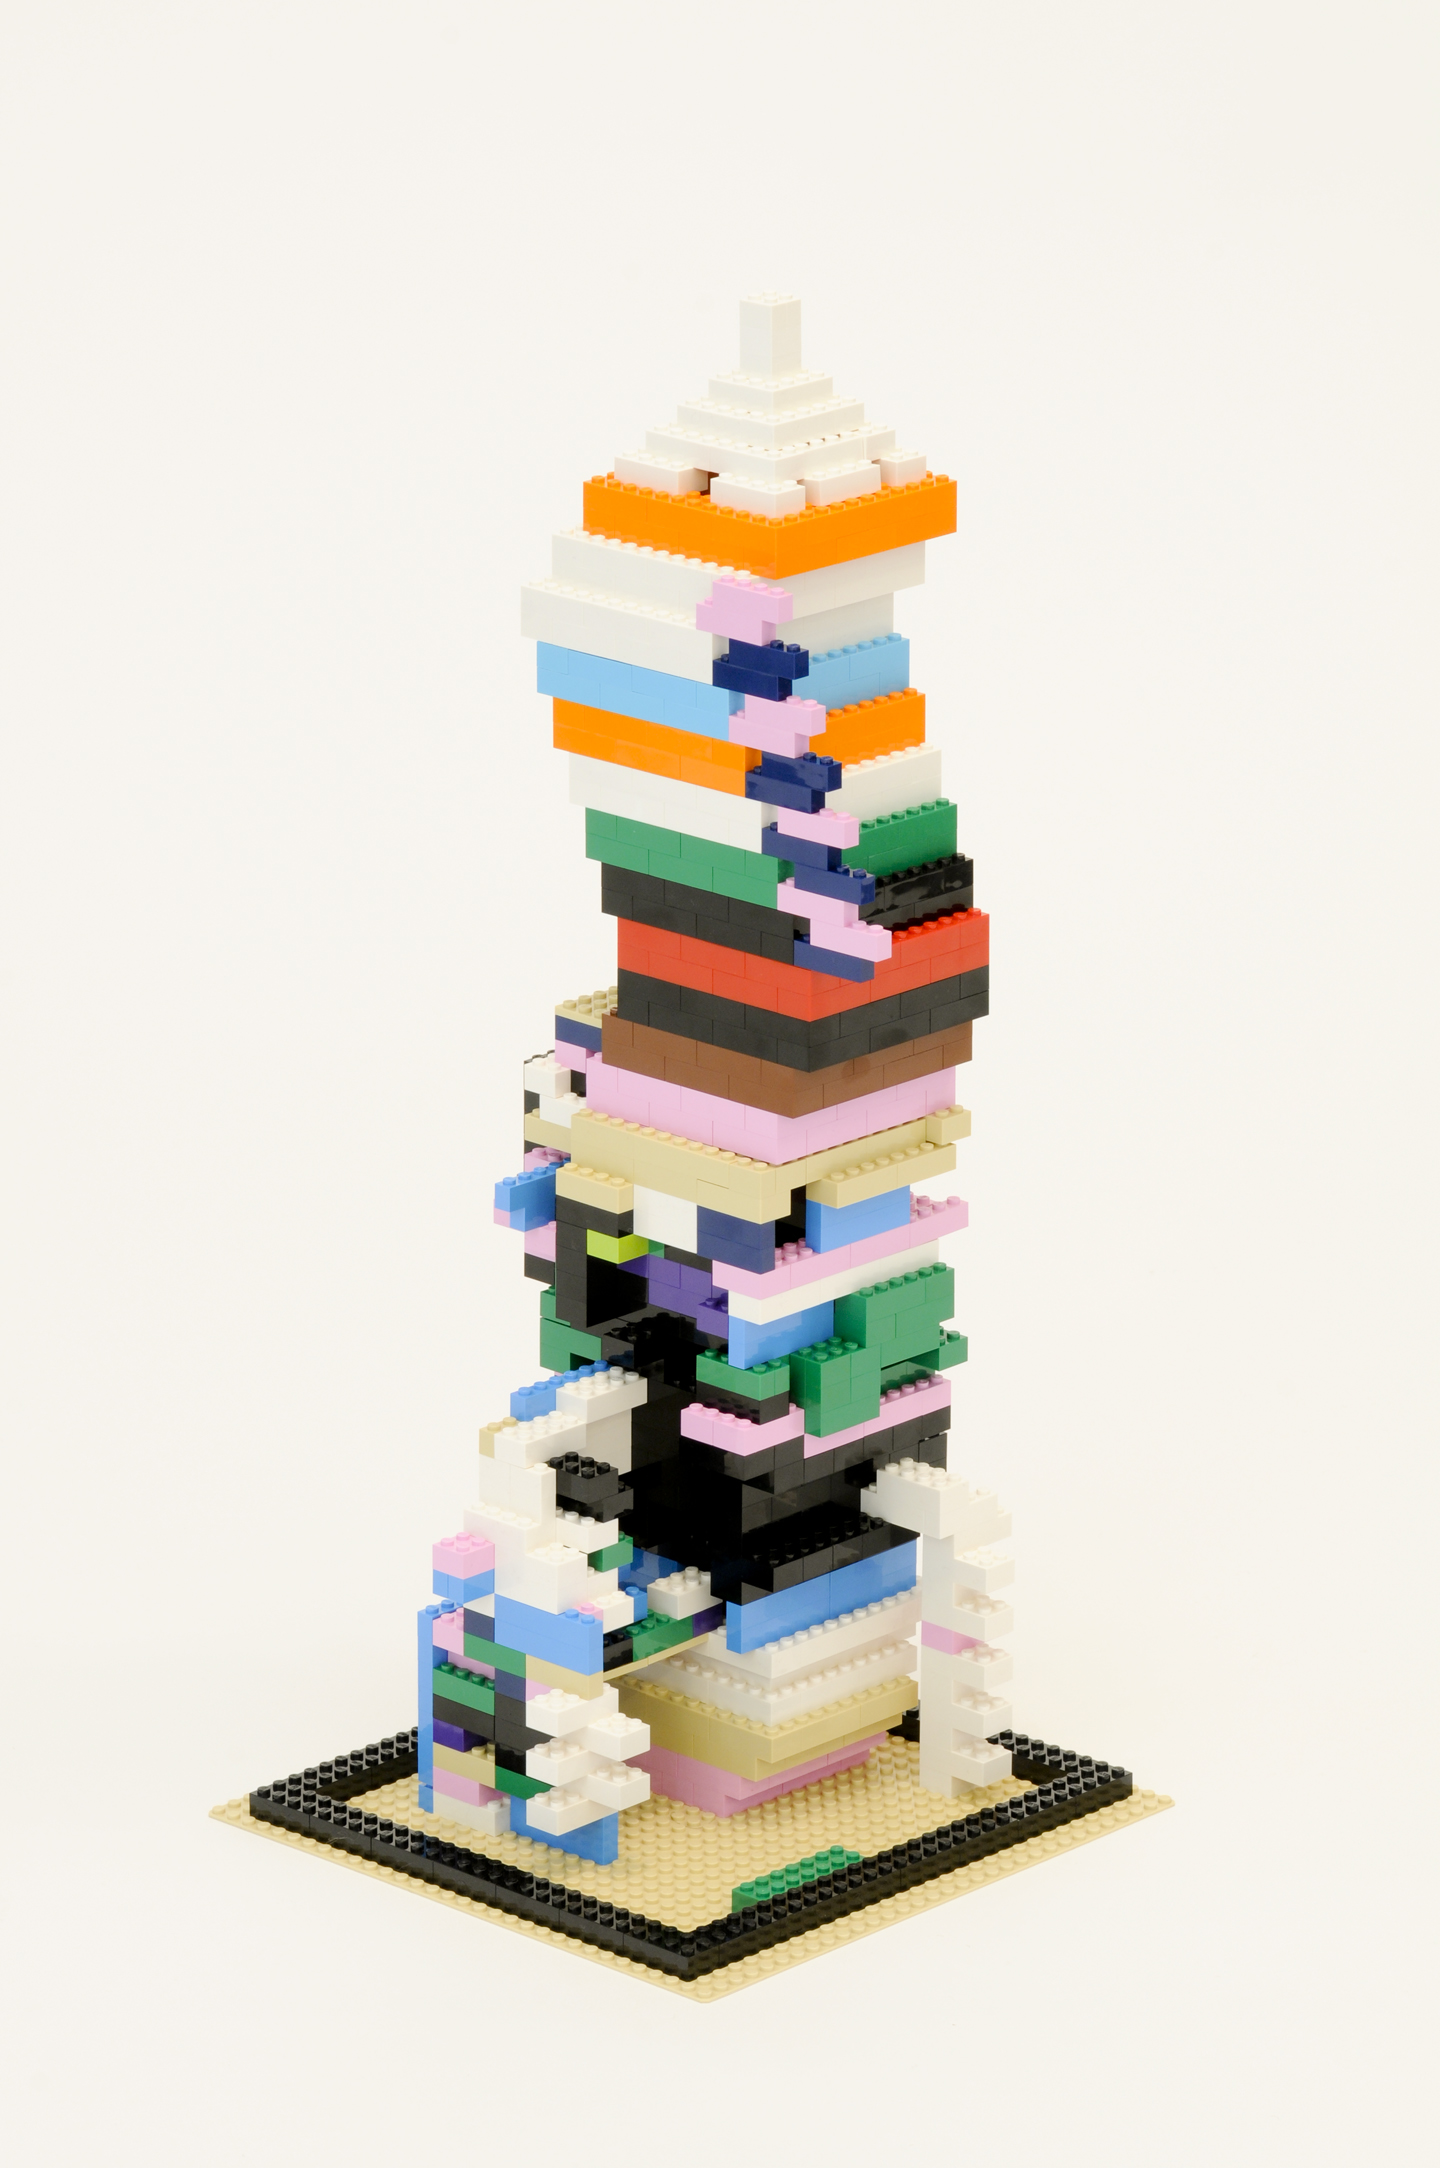 Douglas Coupland, Crowd-sourced Lego modules randomly attached to each other, 2014. Courtesy: Daniel Faria Gallery, Toronto. Photo: Andrew Jenkins